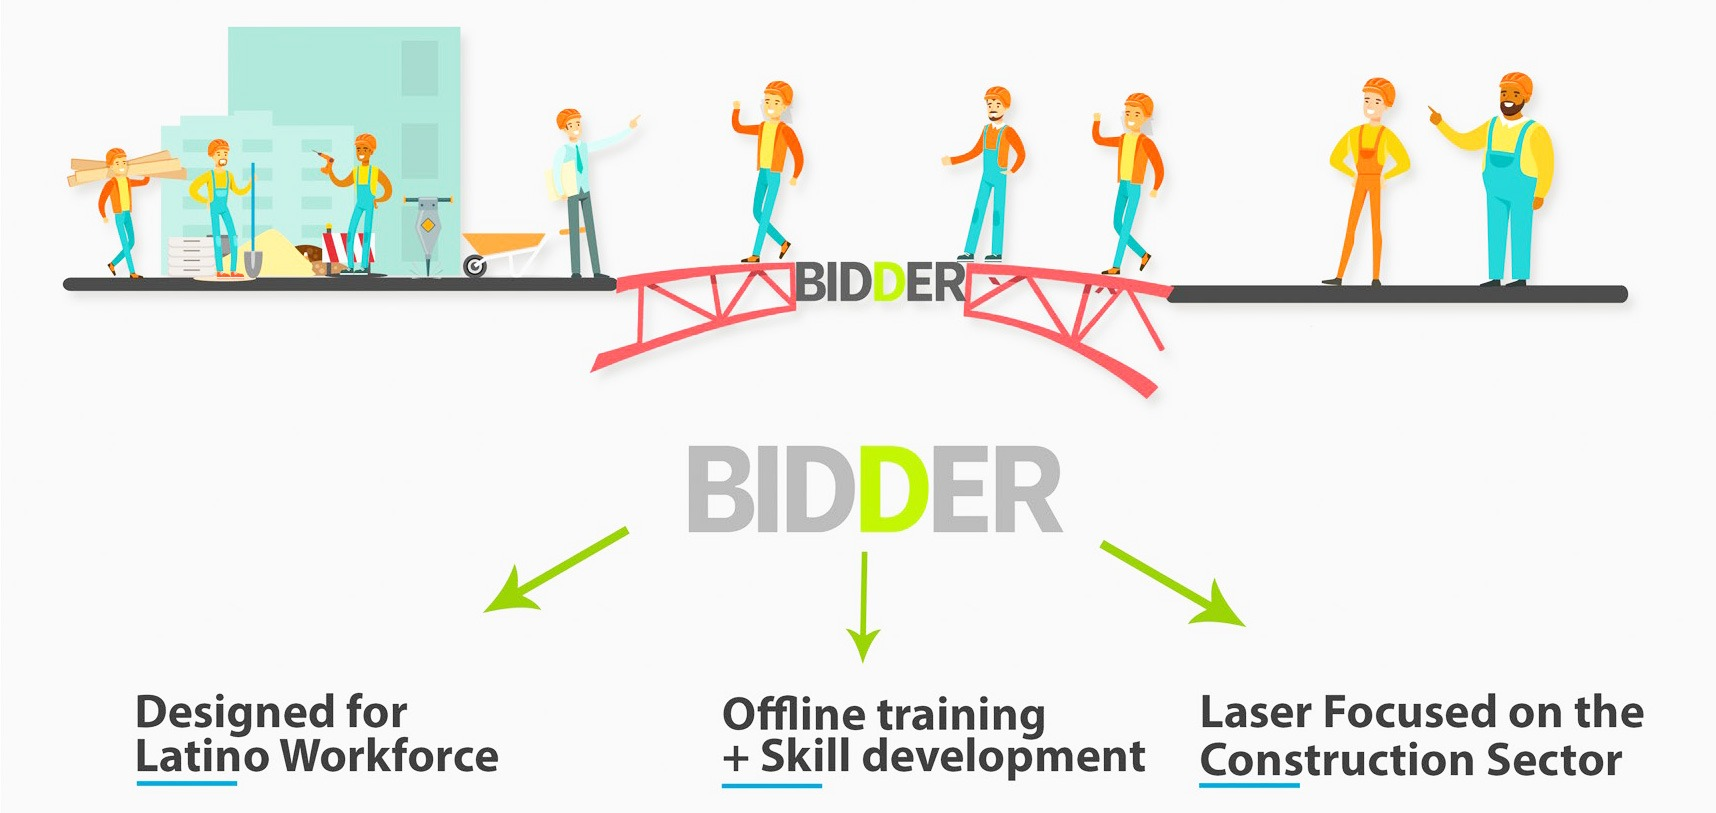 bridge-bidder